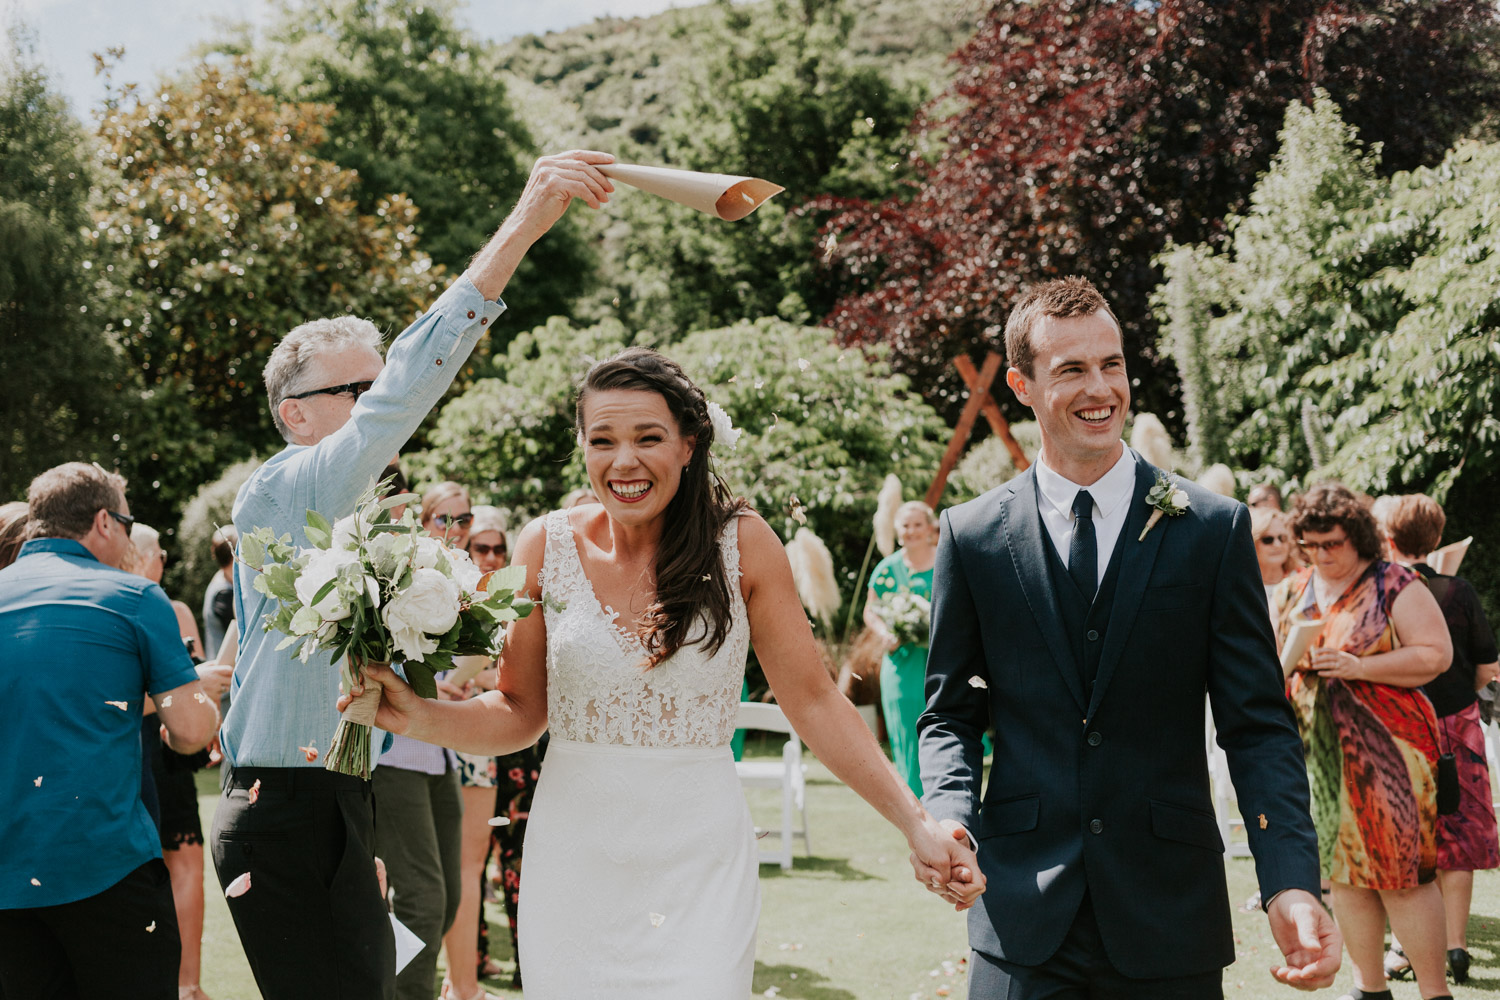 Guests throwing flower petals over Bride and Groom